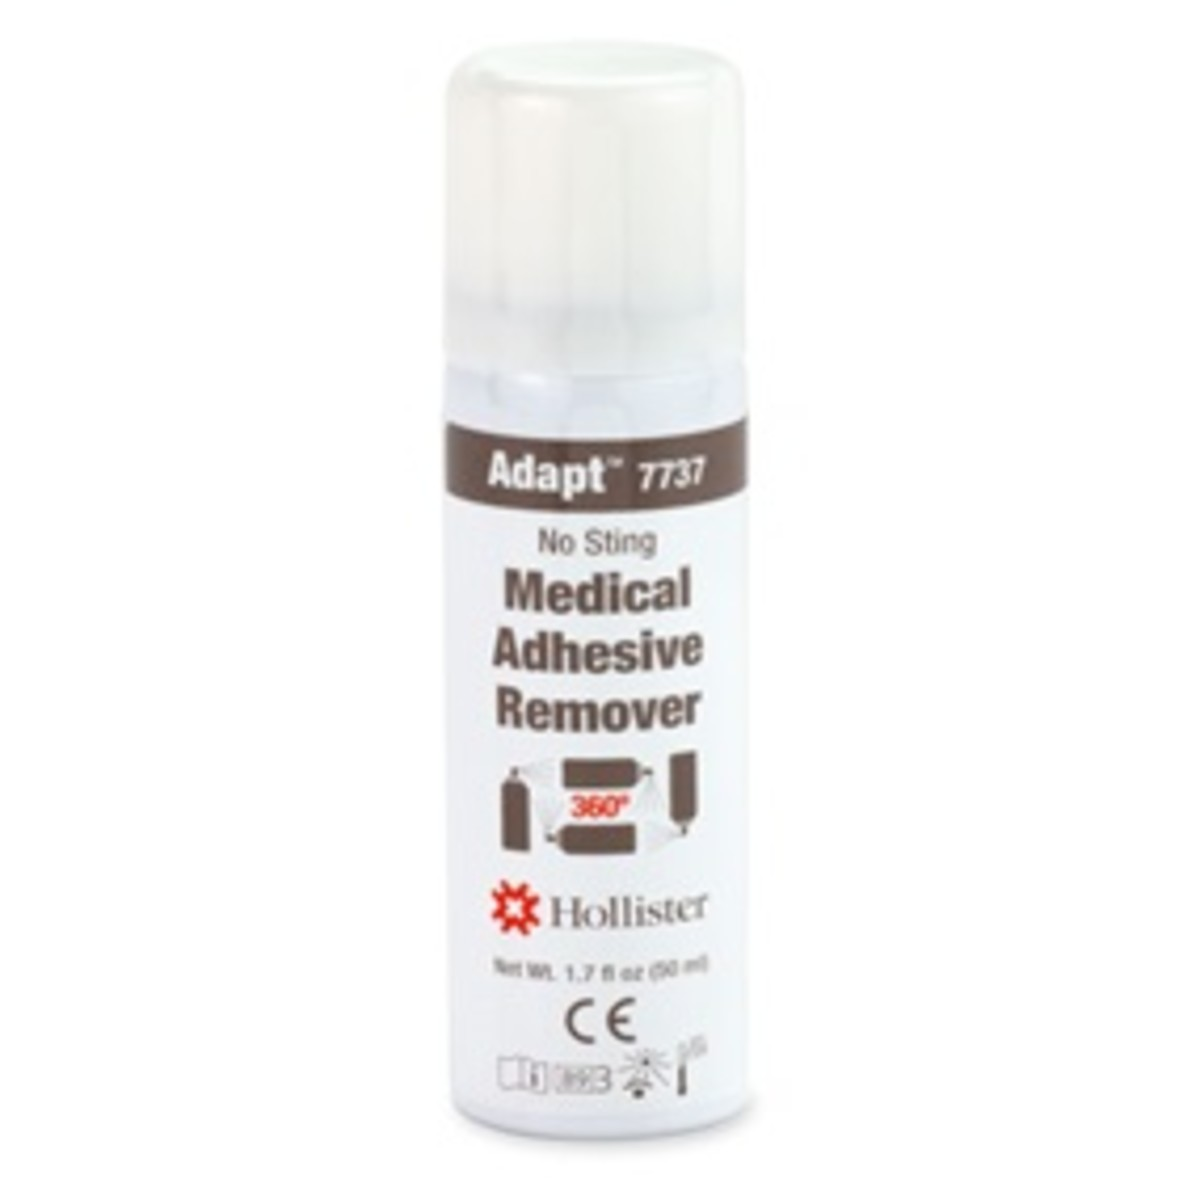 Adapt™ medical adhesive remover spray is not made with natural rubber latex and contains no CFCs.